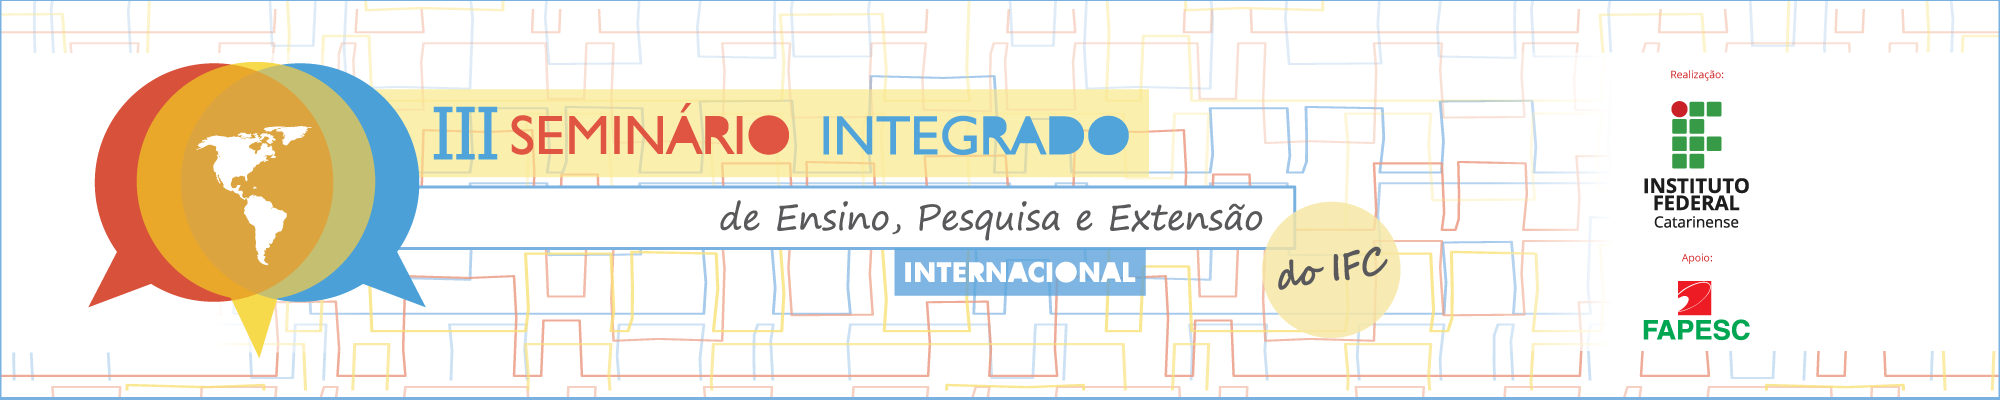 Seminário Integrado